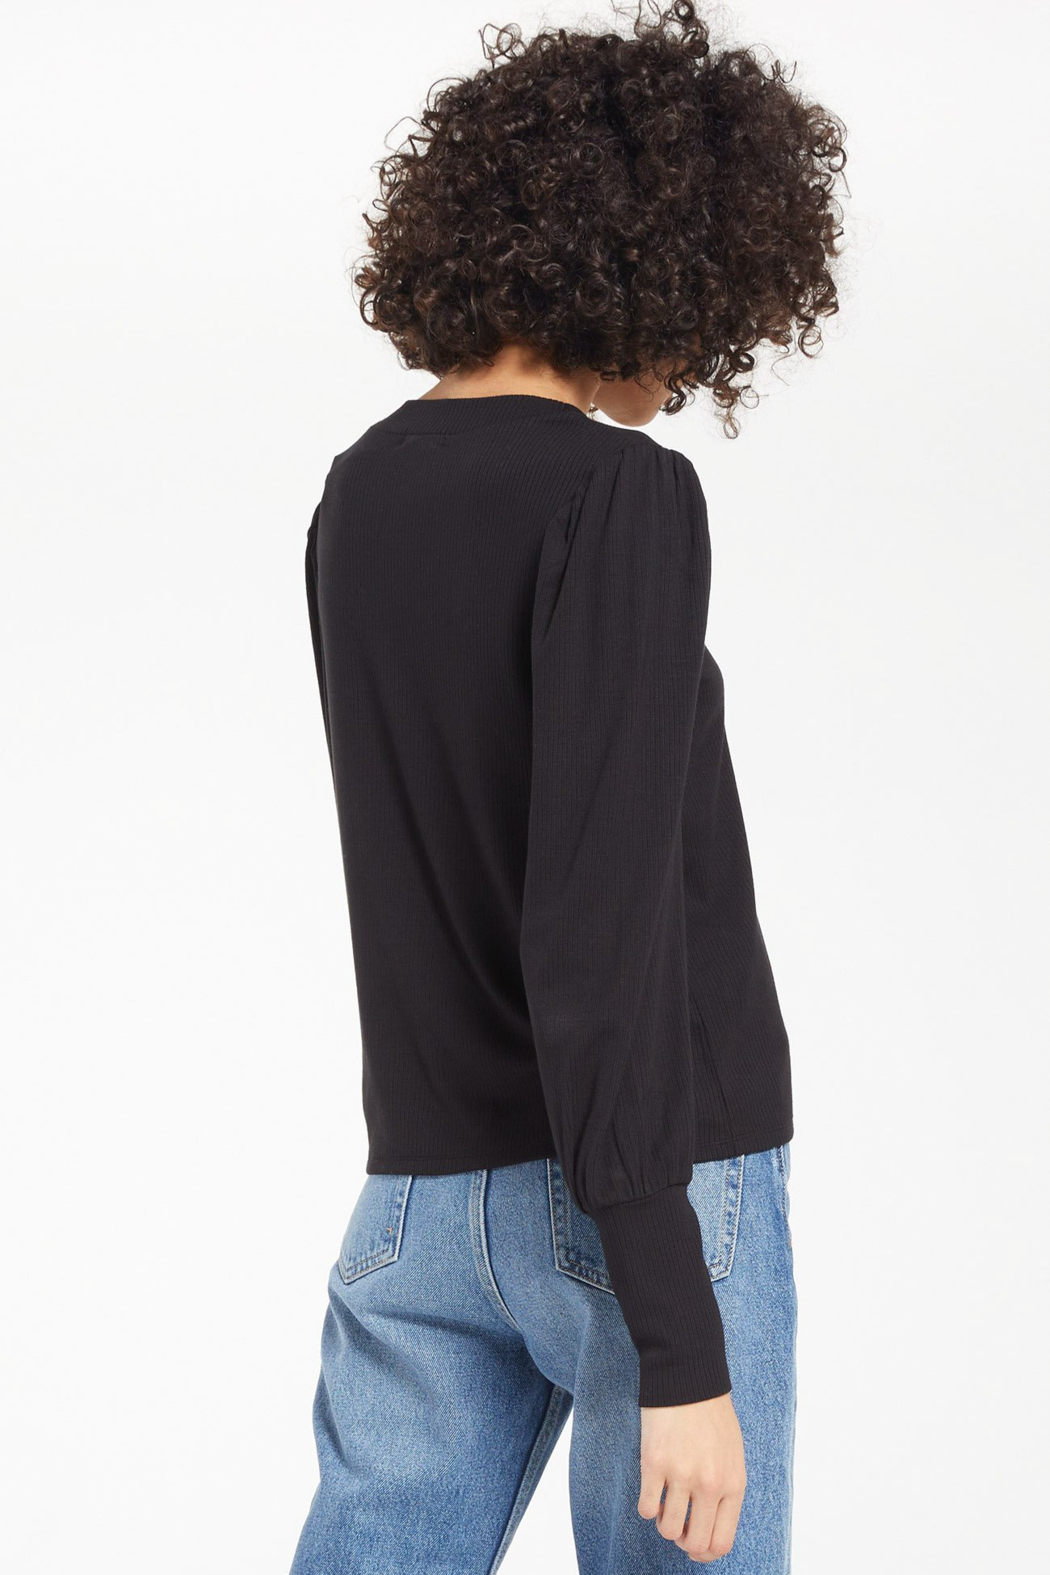 z supply Vada Marled Long Sleeve Top - Front Full Image